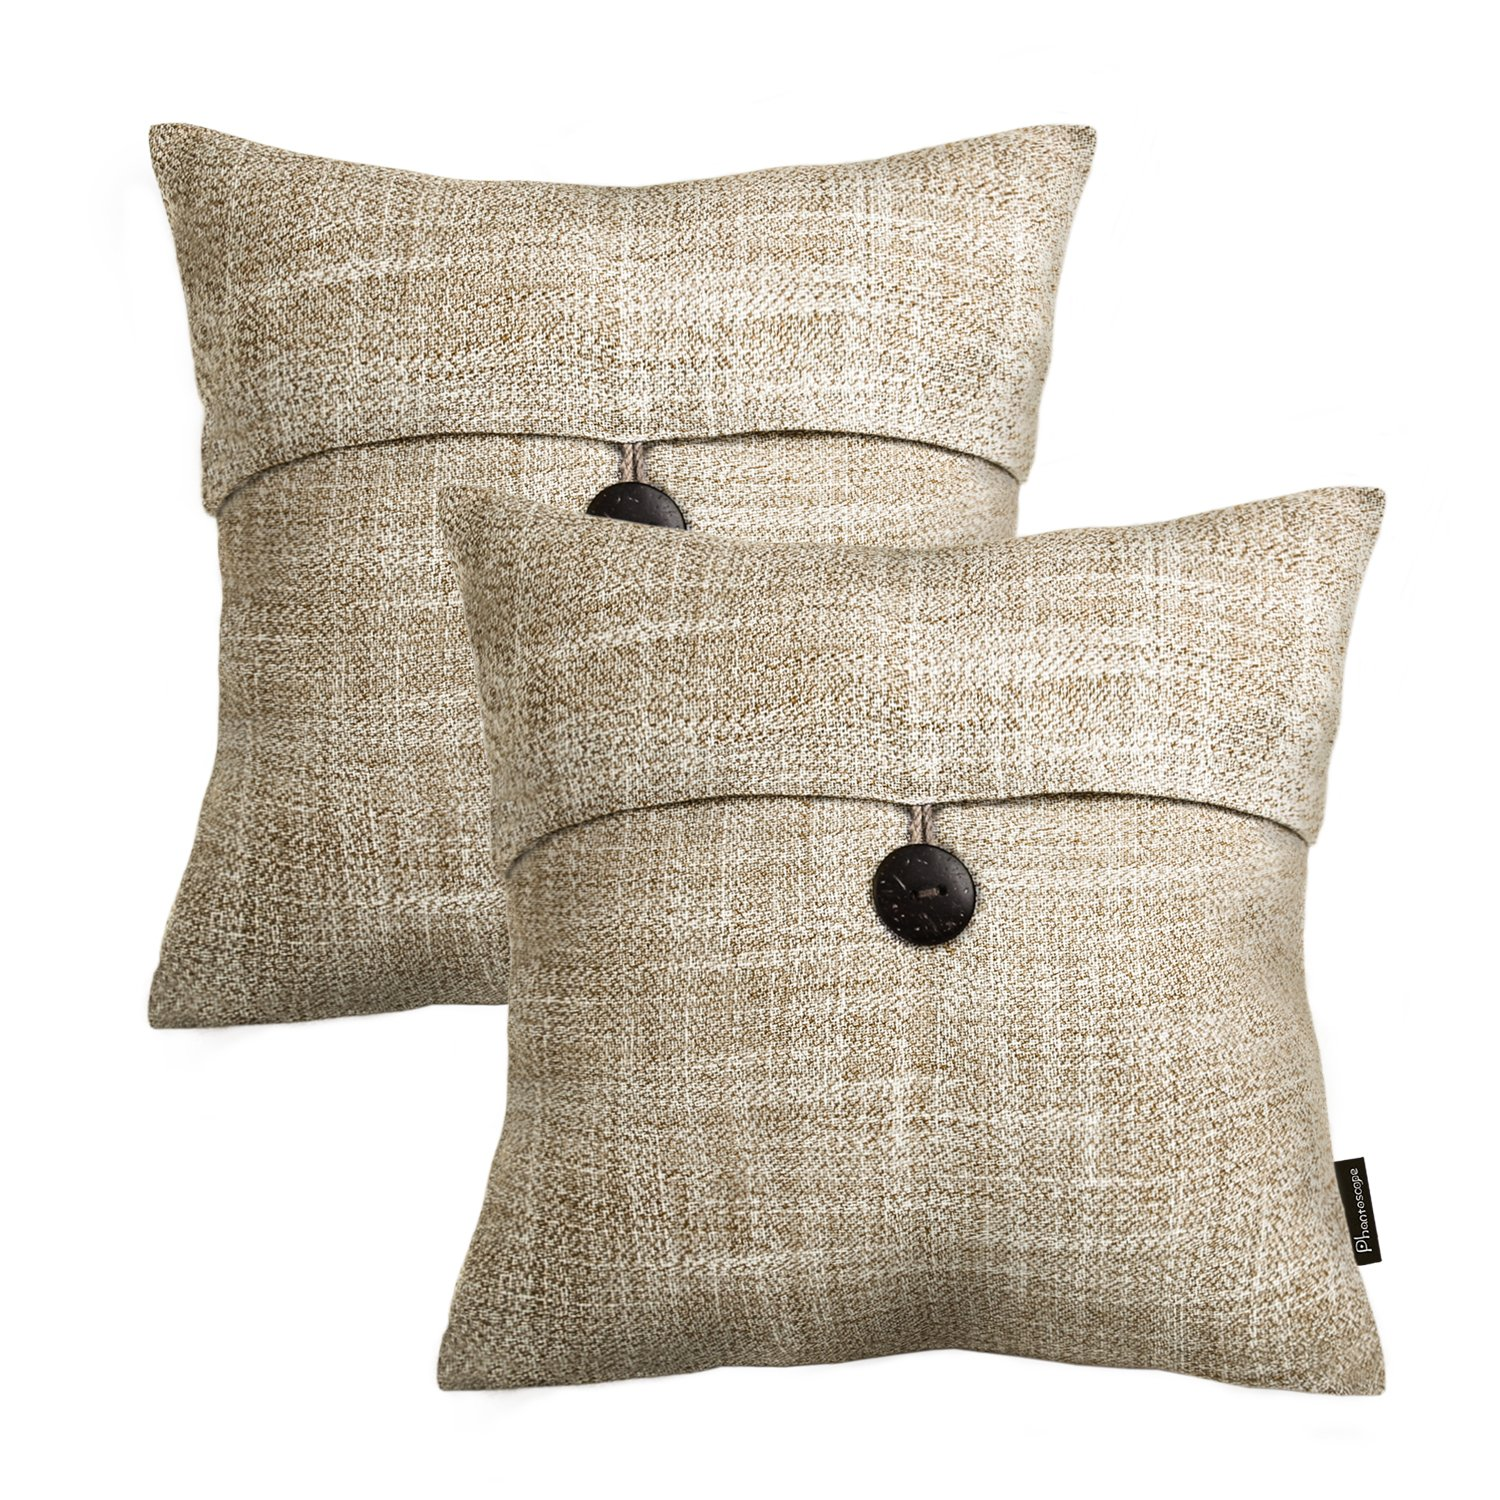 Oversized Sofa Pillows: Oversized Couch Pillows: Amazon.com